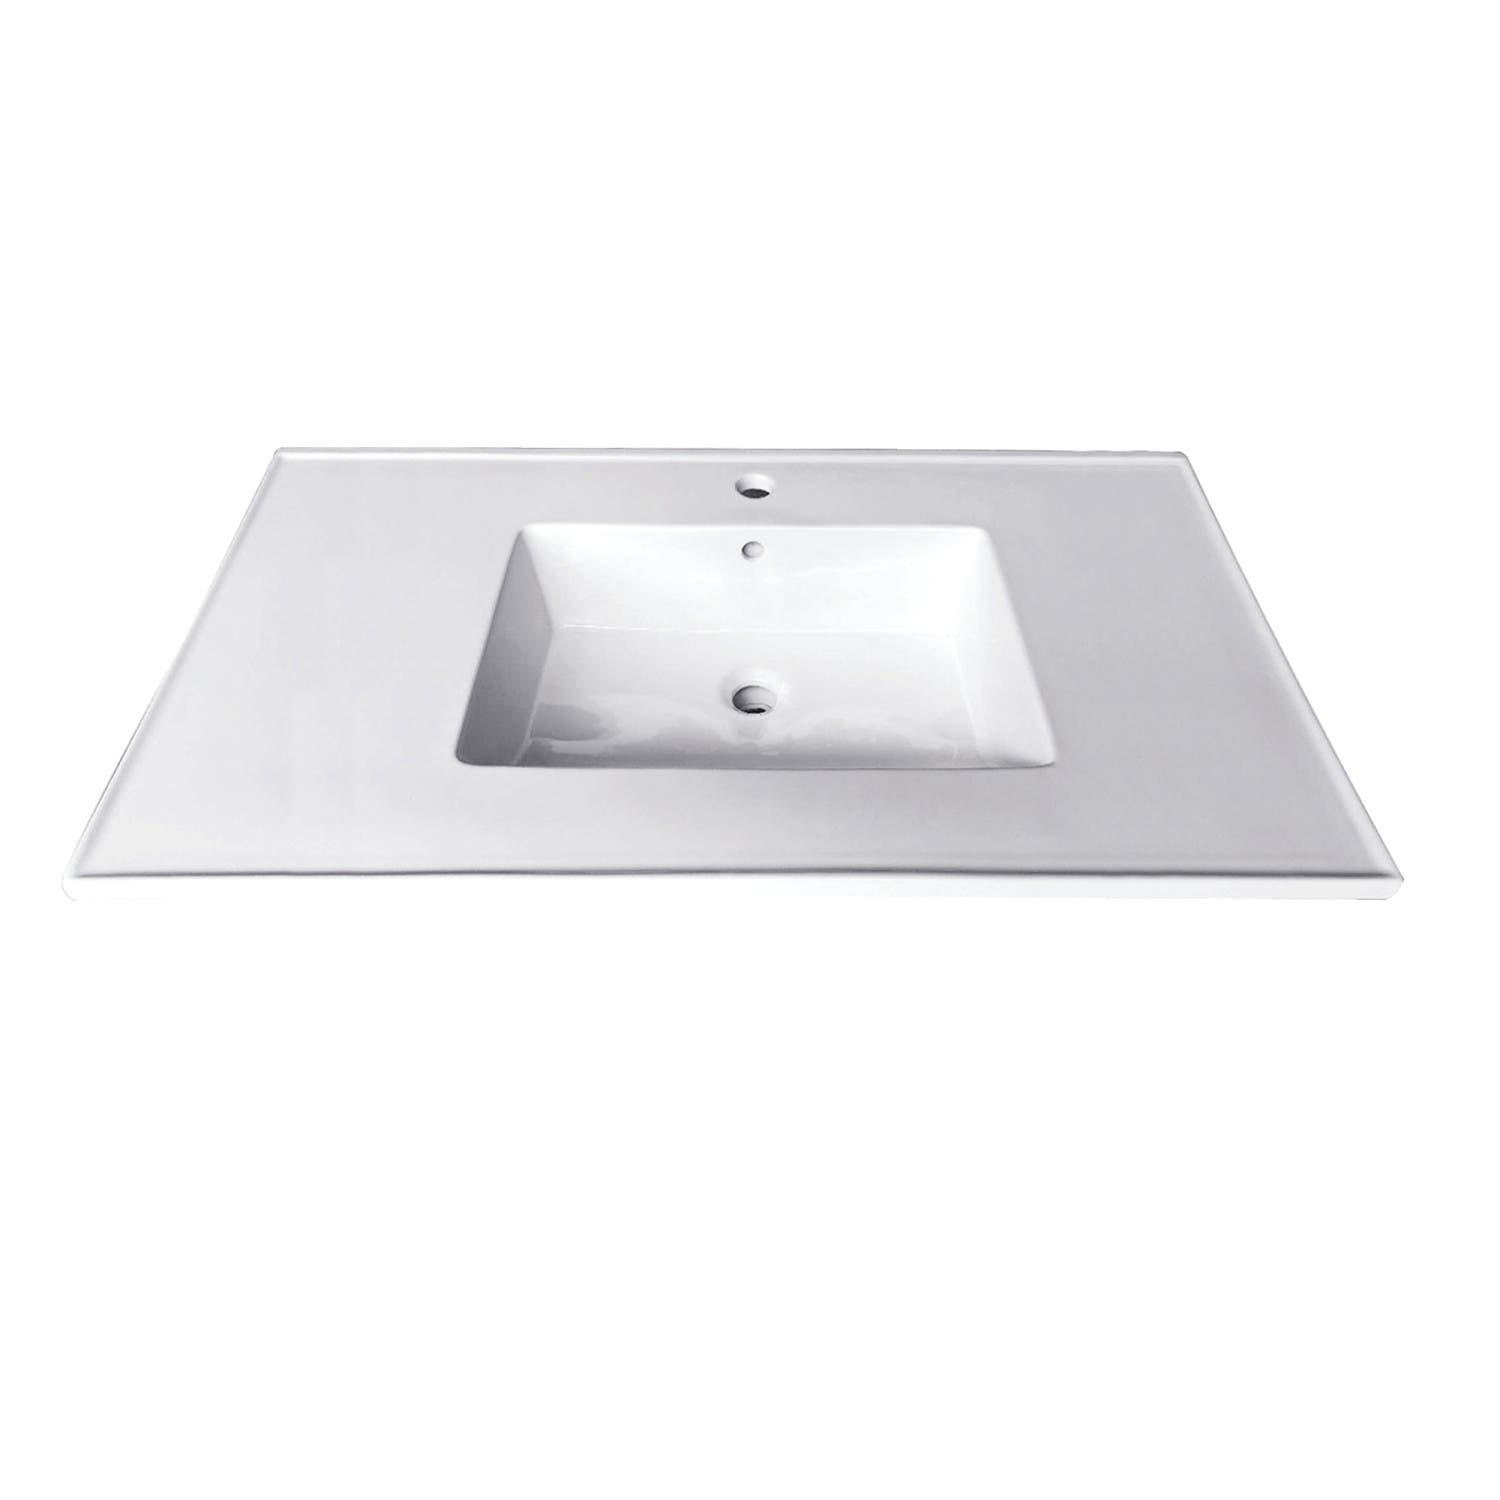 Fauceture Lbt312271 Continental 31 Inch Ceramic Vanity Top 1 Hole White Kingston Brass